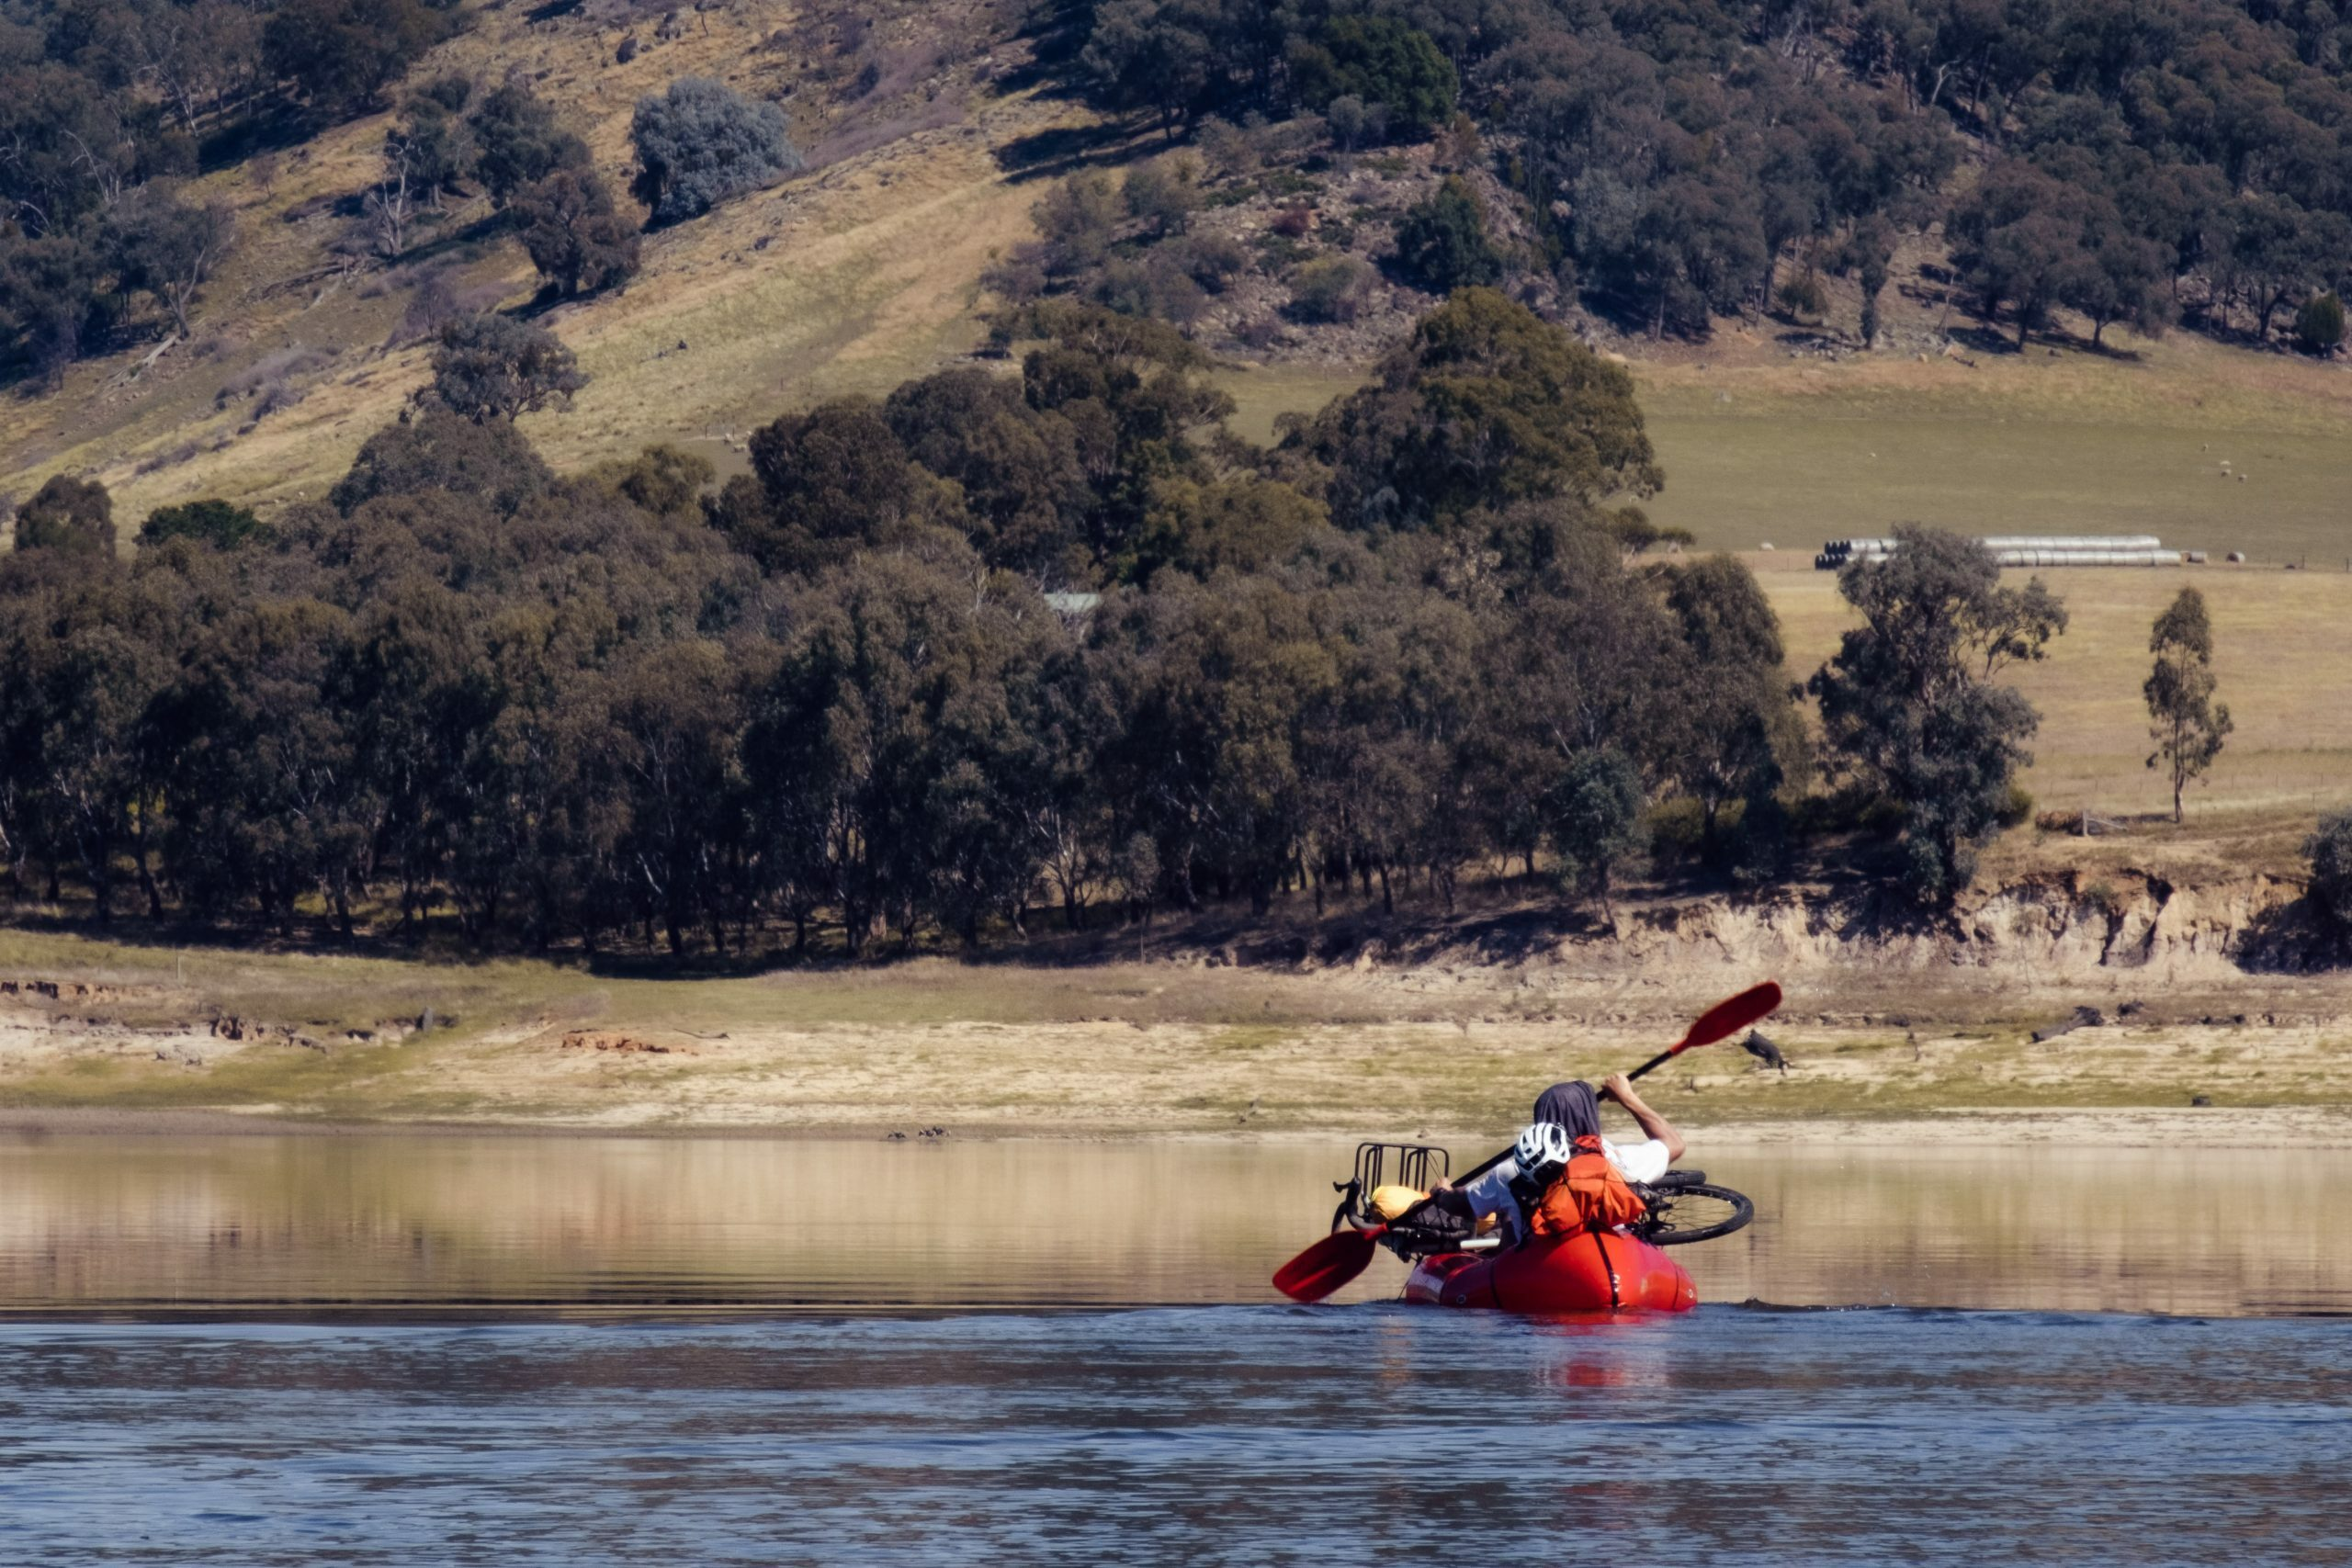 Packrafting on the murray river